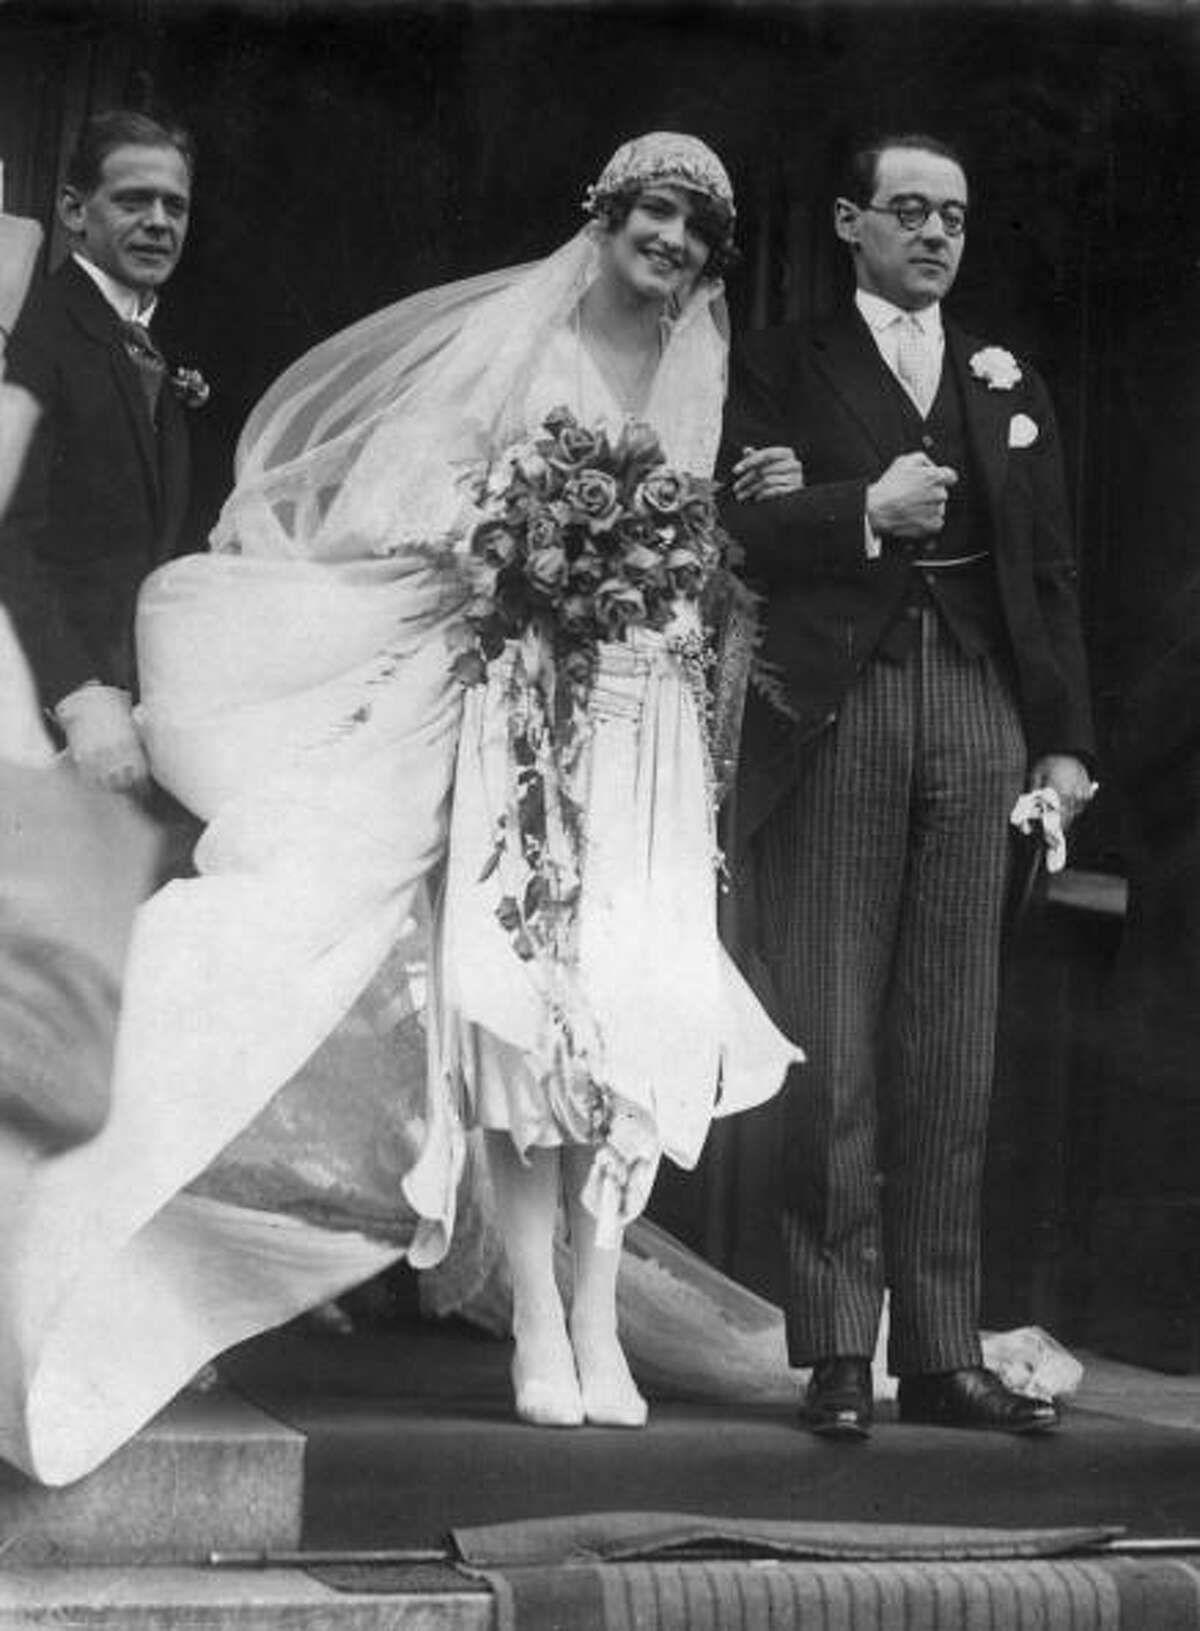 1925: Prince Otto von Bismarck on his wedding day. The Texas wedding trend coming to a small town near you A stylist and fashion photographer's dream New Orleans wedding